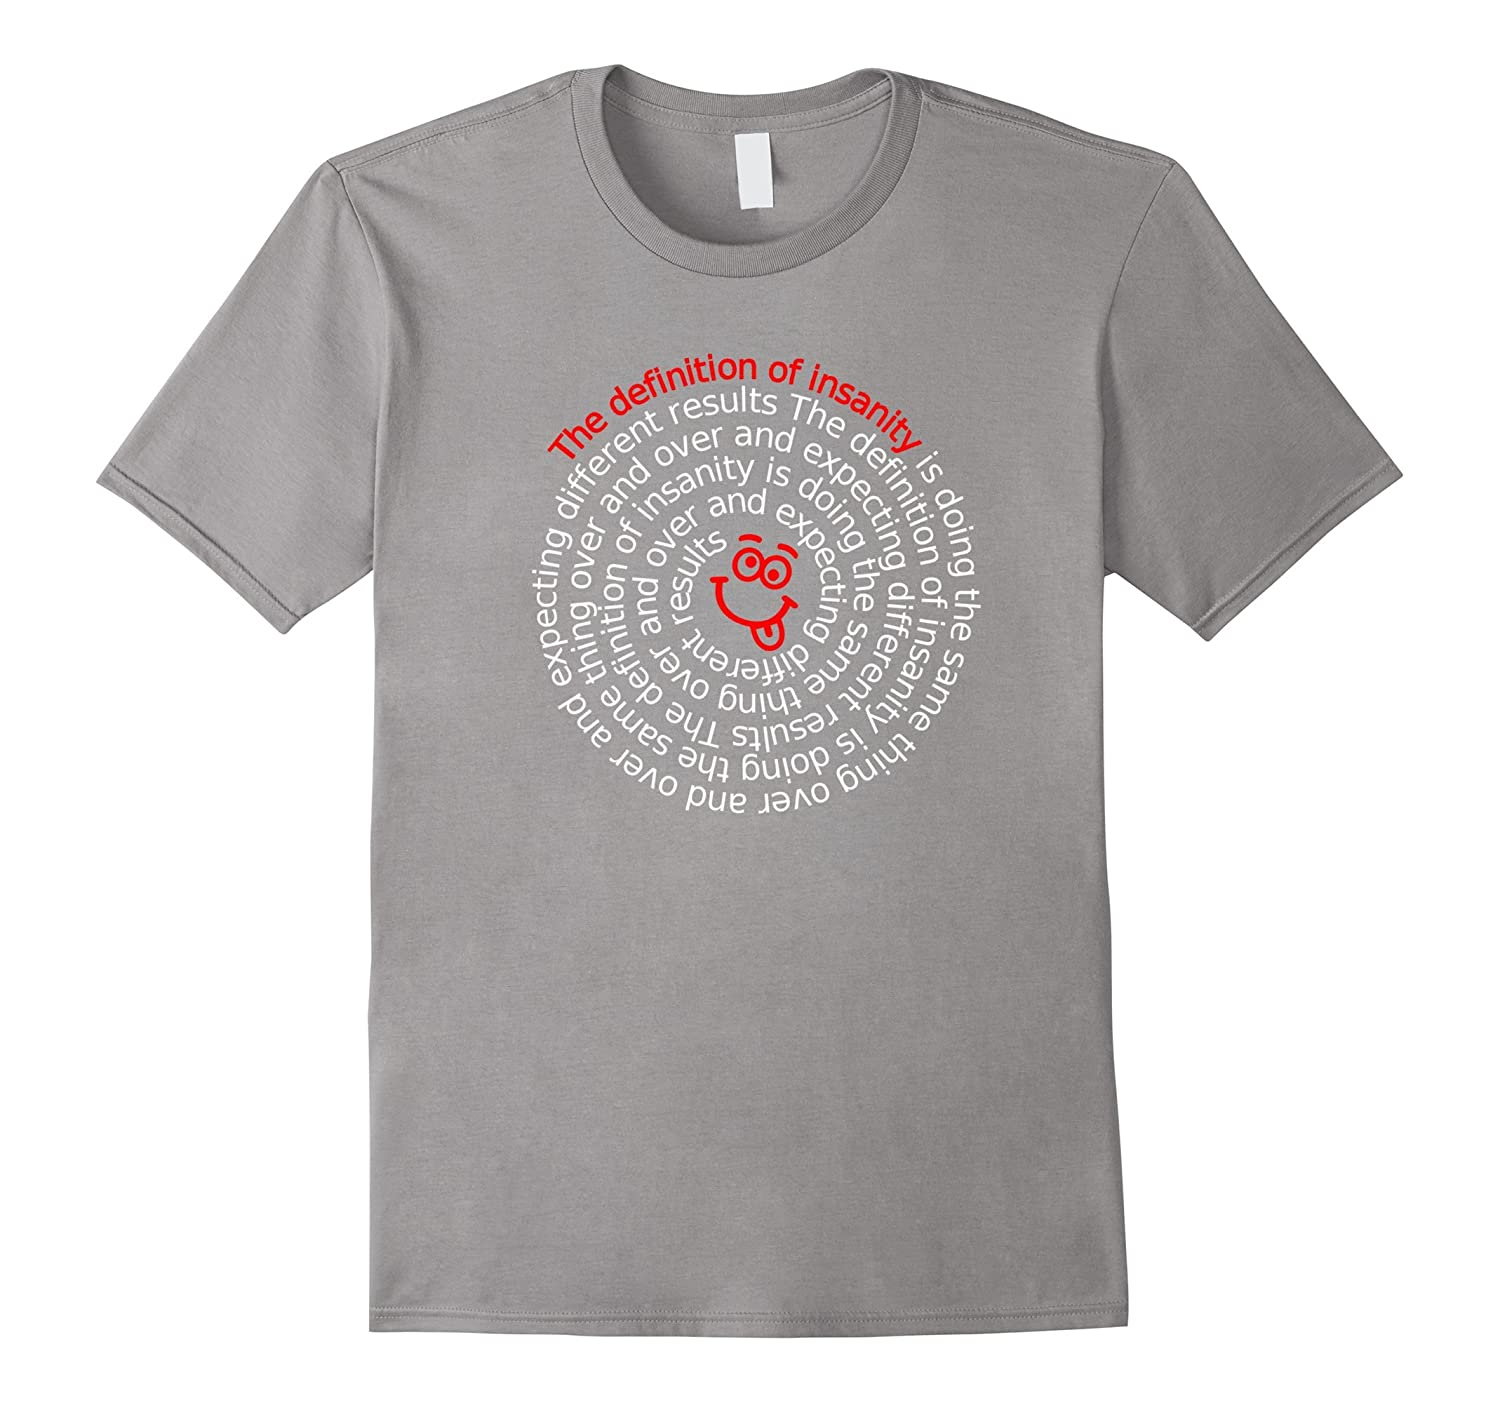 'Definition of Insanity' – Funny AA 12 Step Recovery T Shirt